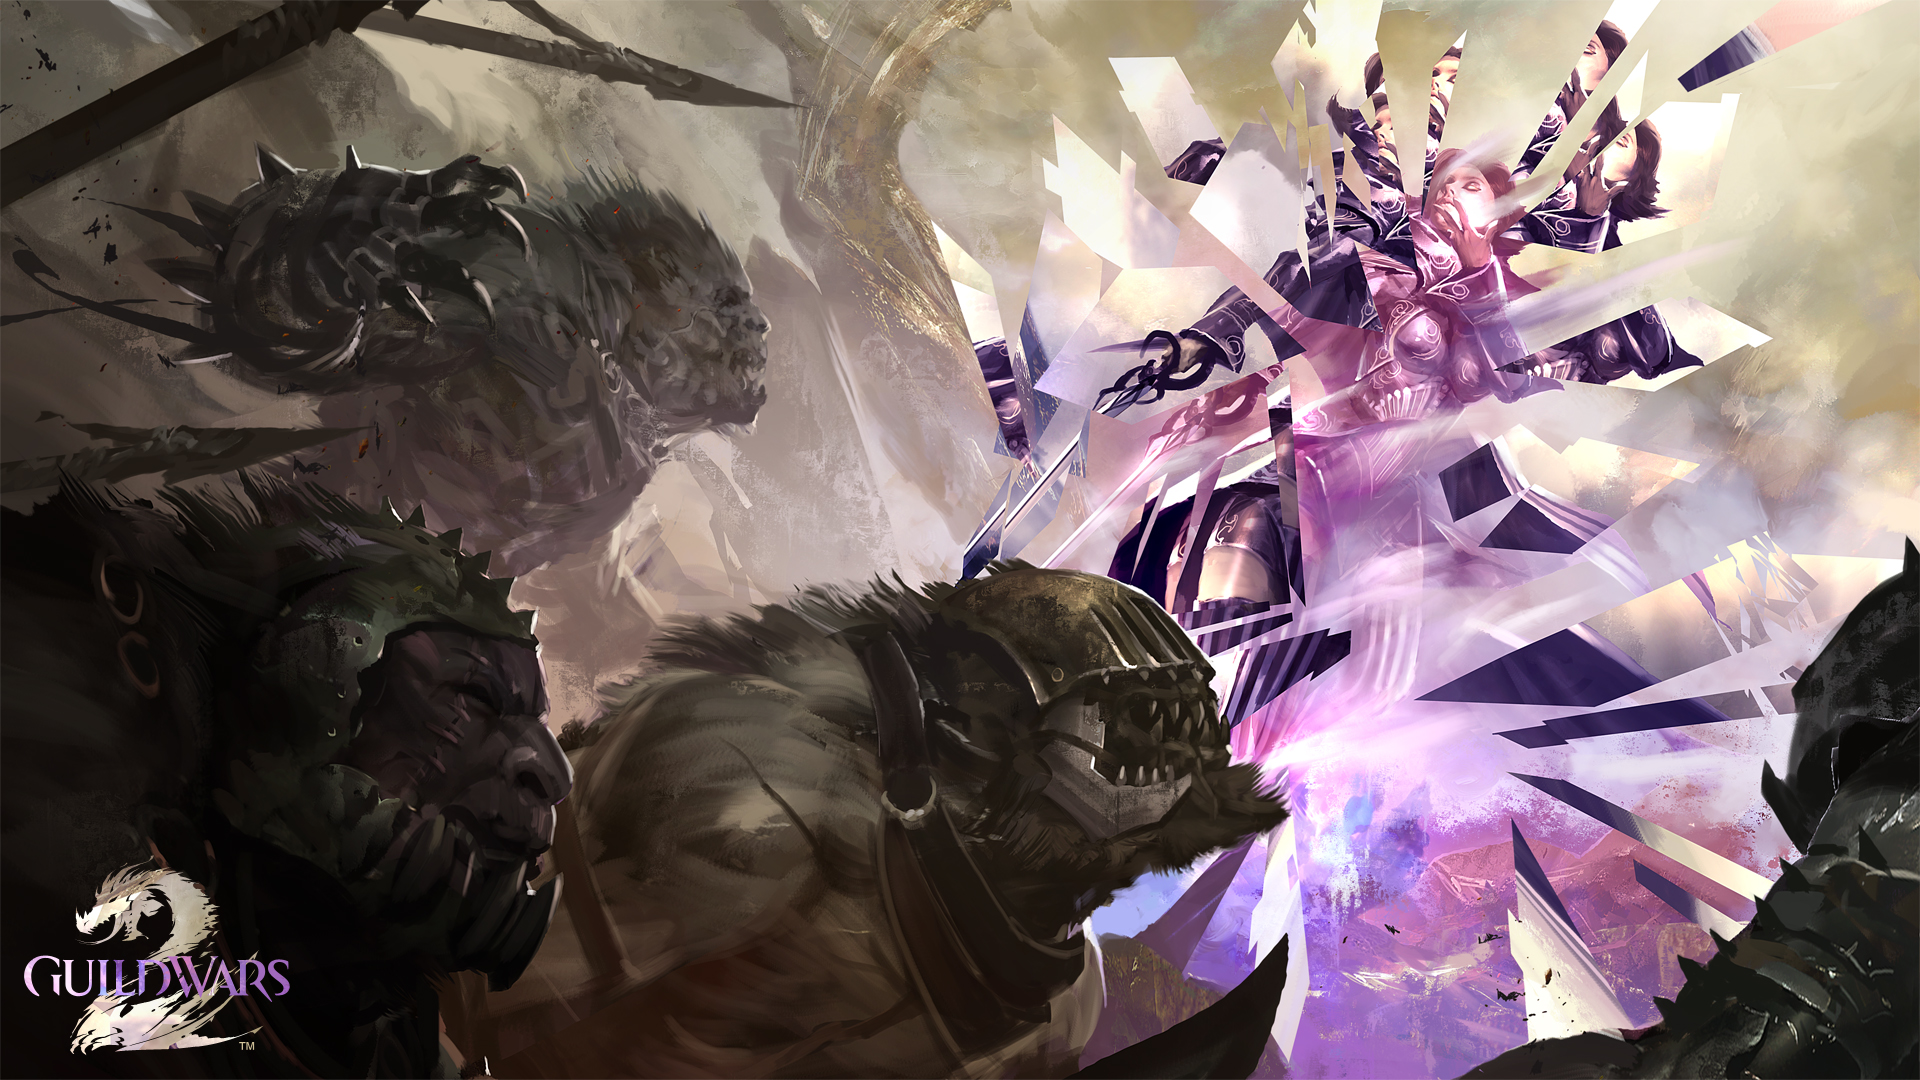 Guild Wars 2 Mesmer 451967 Hd Wallpaper Backgrounds Download